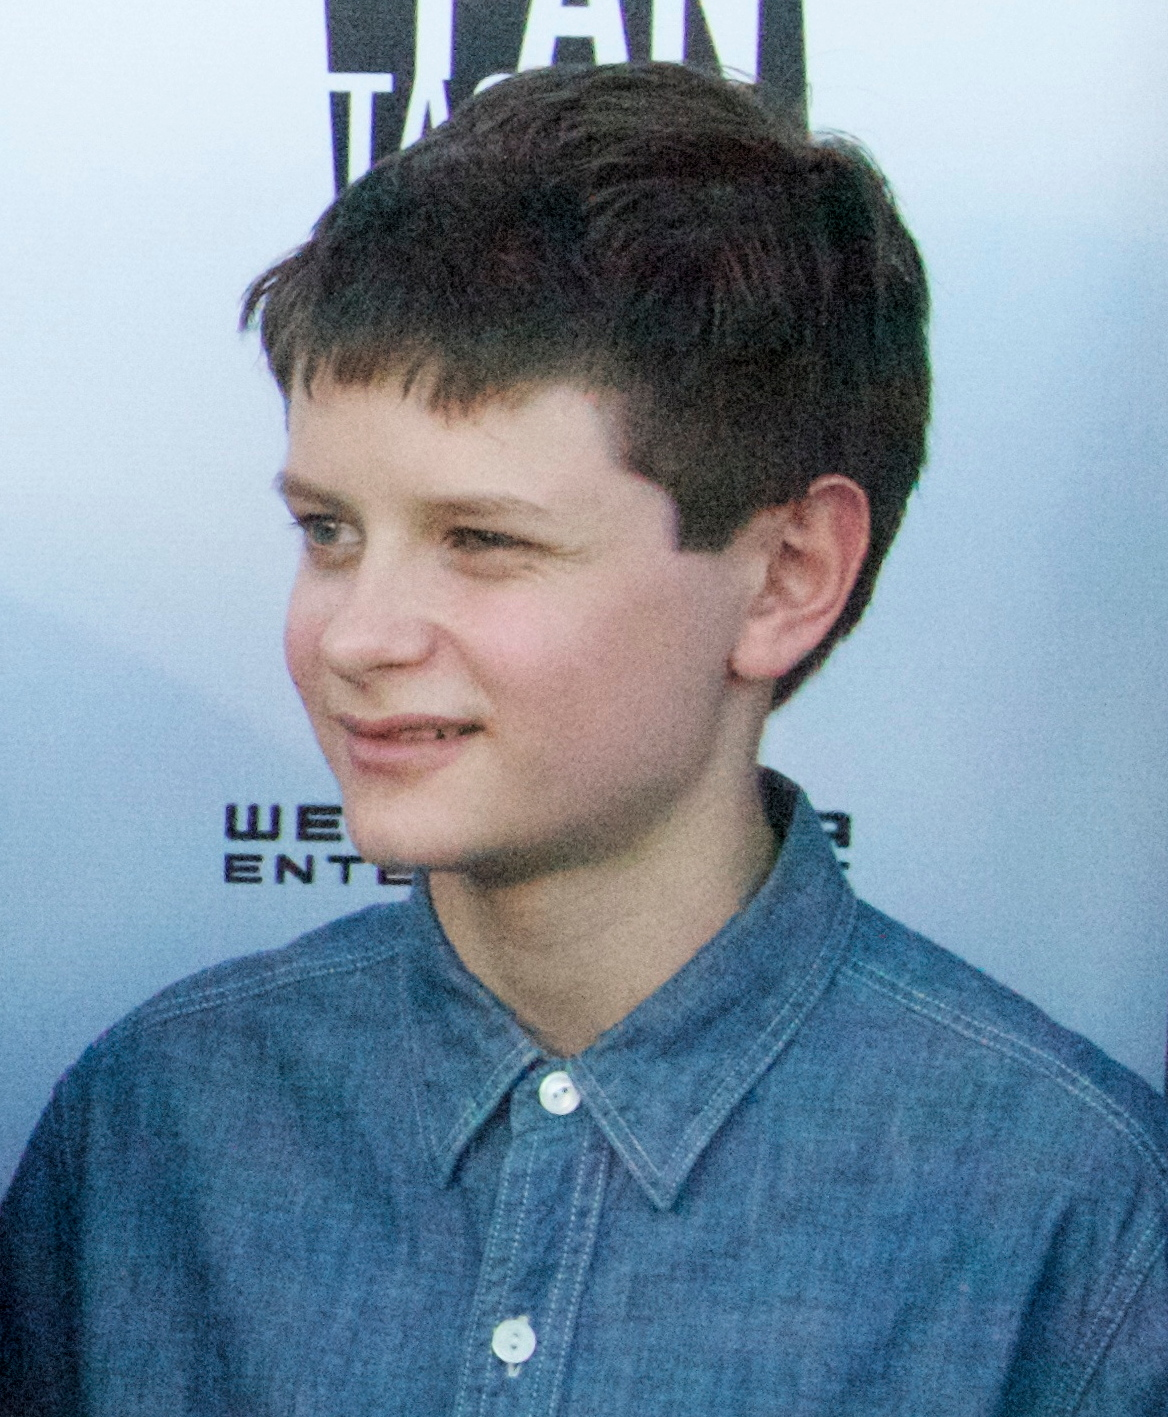 charlie tahan twittercharlie tahan instagram, charlie tahan twitter, charlie tahan tumblr, charlie tahan, charlie tahan 2015, charlie tahan gotham, charlie tahan height, чарли тахэн, charlie tahan wayward pines, charlie tahan age, charlie tahan imdb, charlie tahan steve zahn, charlie tahan wiki, charlie tahan facebook, charlie tahan biography, charlie tahan love is strange, charlie tahan parents, charlie tahan movies, charlie tahan father, charlie tahan net worth